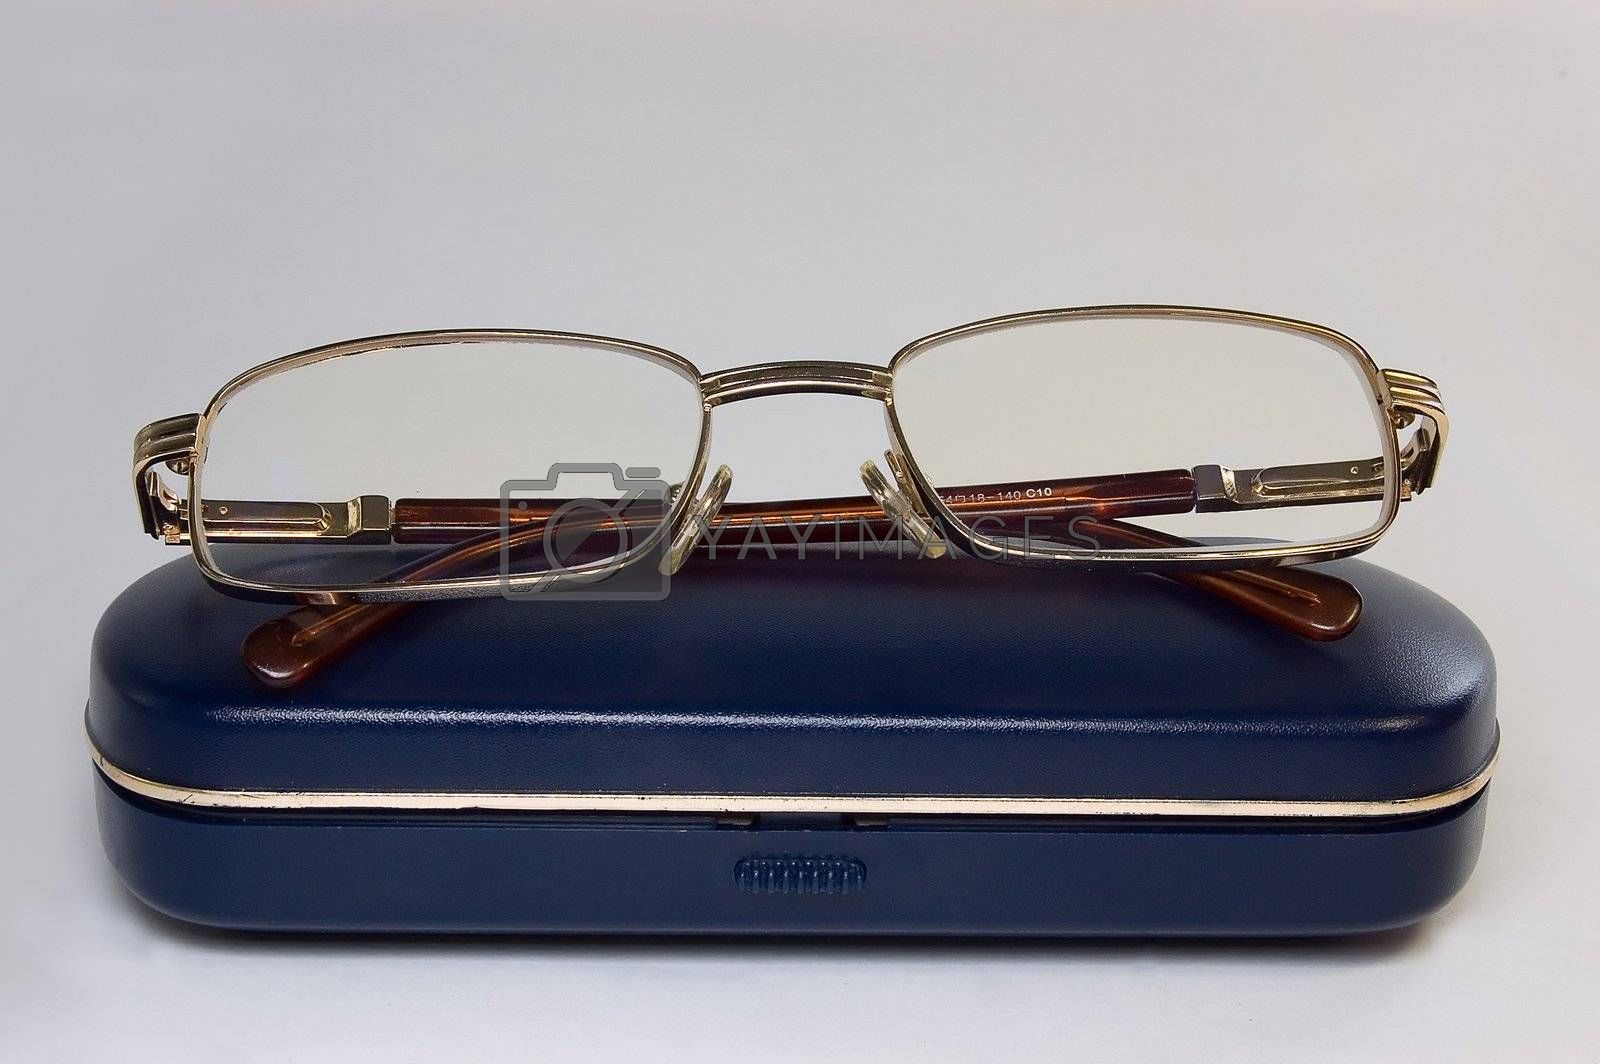 Spectacles on box